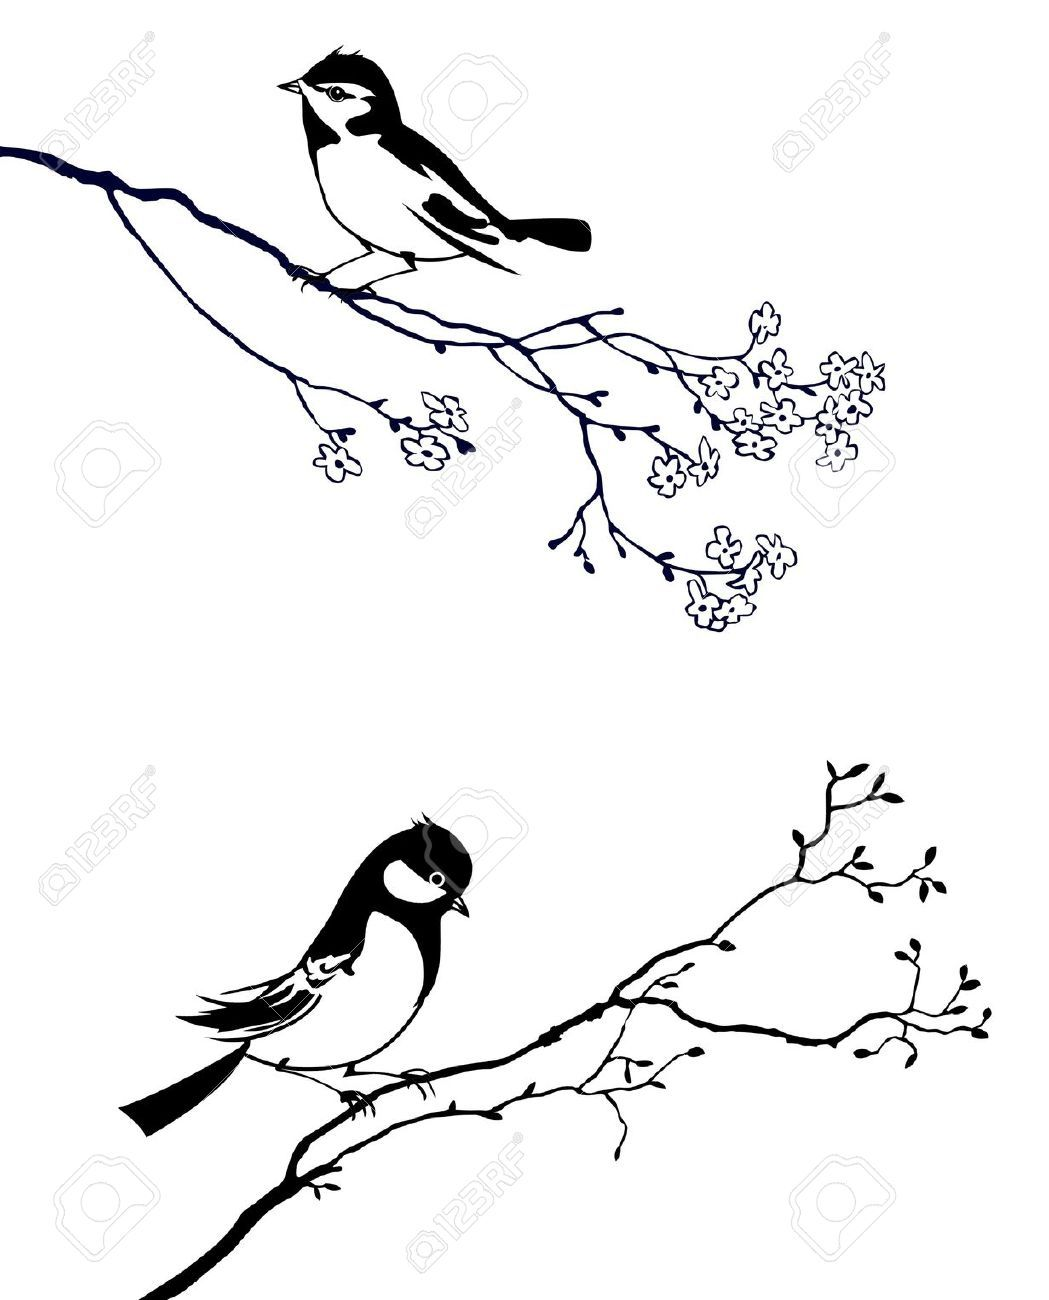 Tree Branch Silhouette With Bird Tattoo